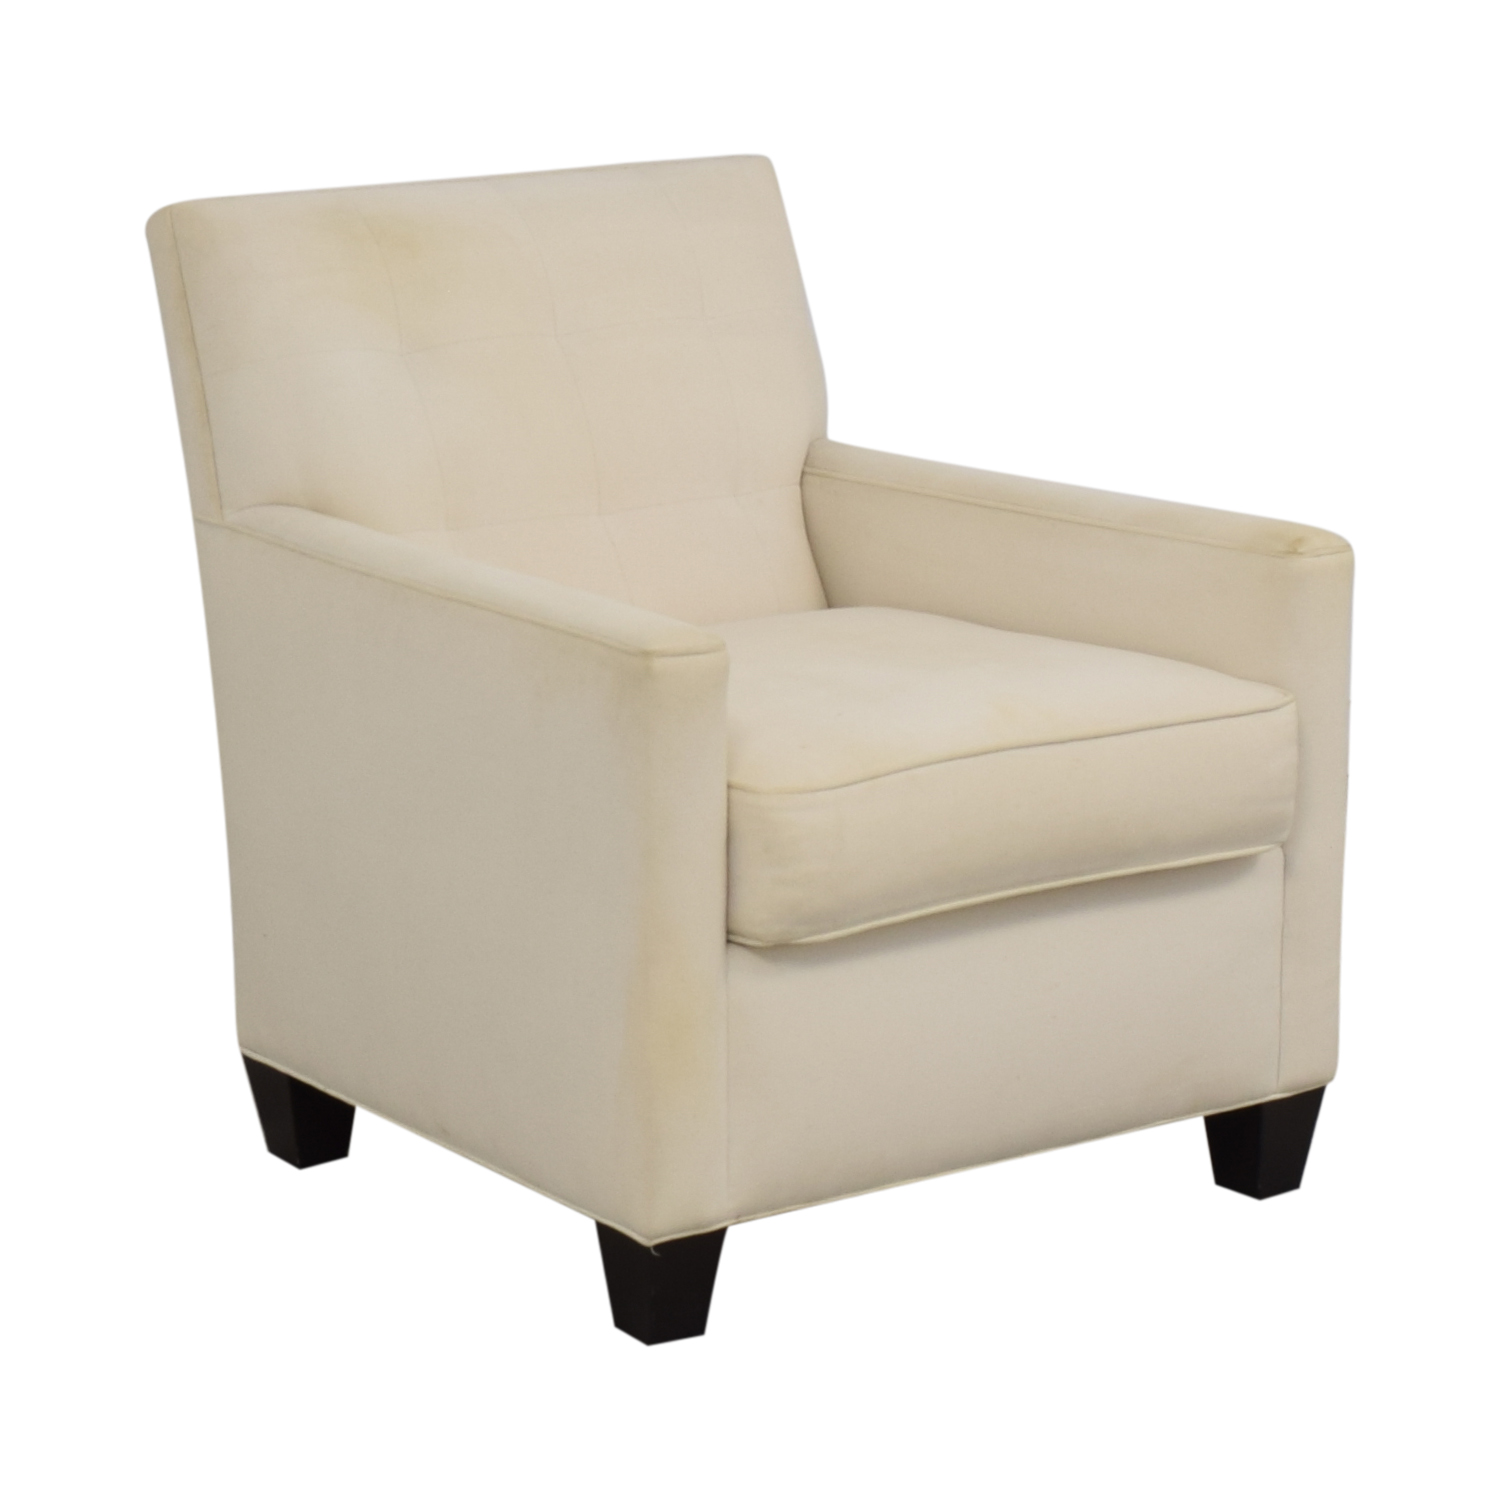 Nathan Anthony Nathan Anthony Tufted Lounge Chair Accent Chairs